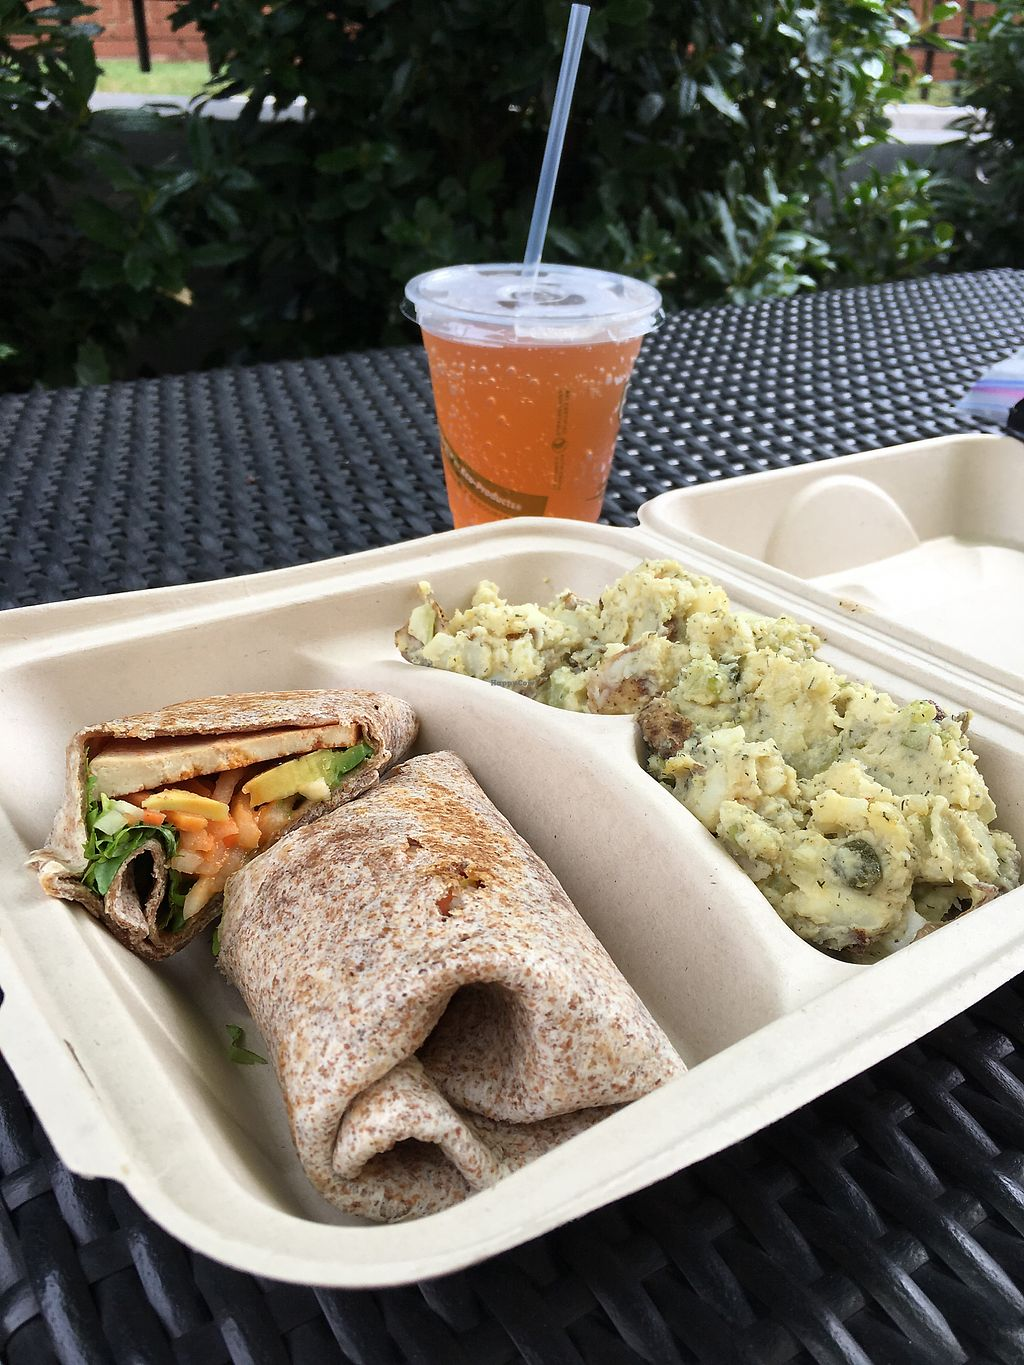 """Photo of Elemental Coffee  by <a href=""""/members/profile/dlachica"""">dlachica</a> <br/>BBQ tofu wrap with dill potato salad and draft kombucha  <br/> October 3, 2017  - <a href='/contact/abuse/image/70923/311507'>Report</a>"""